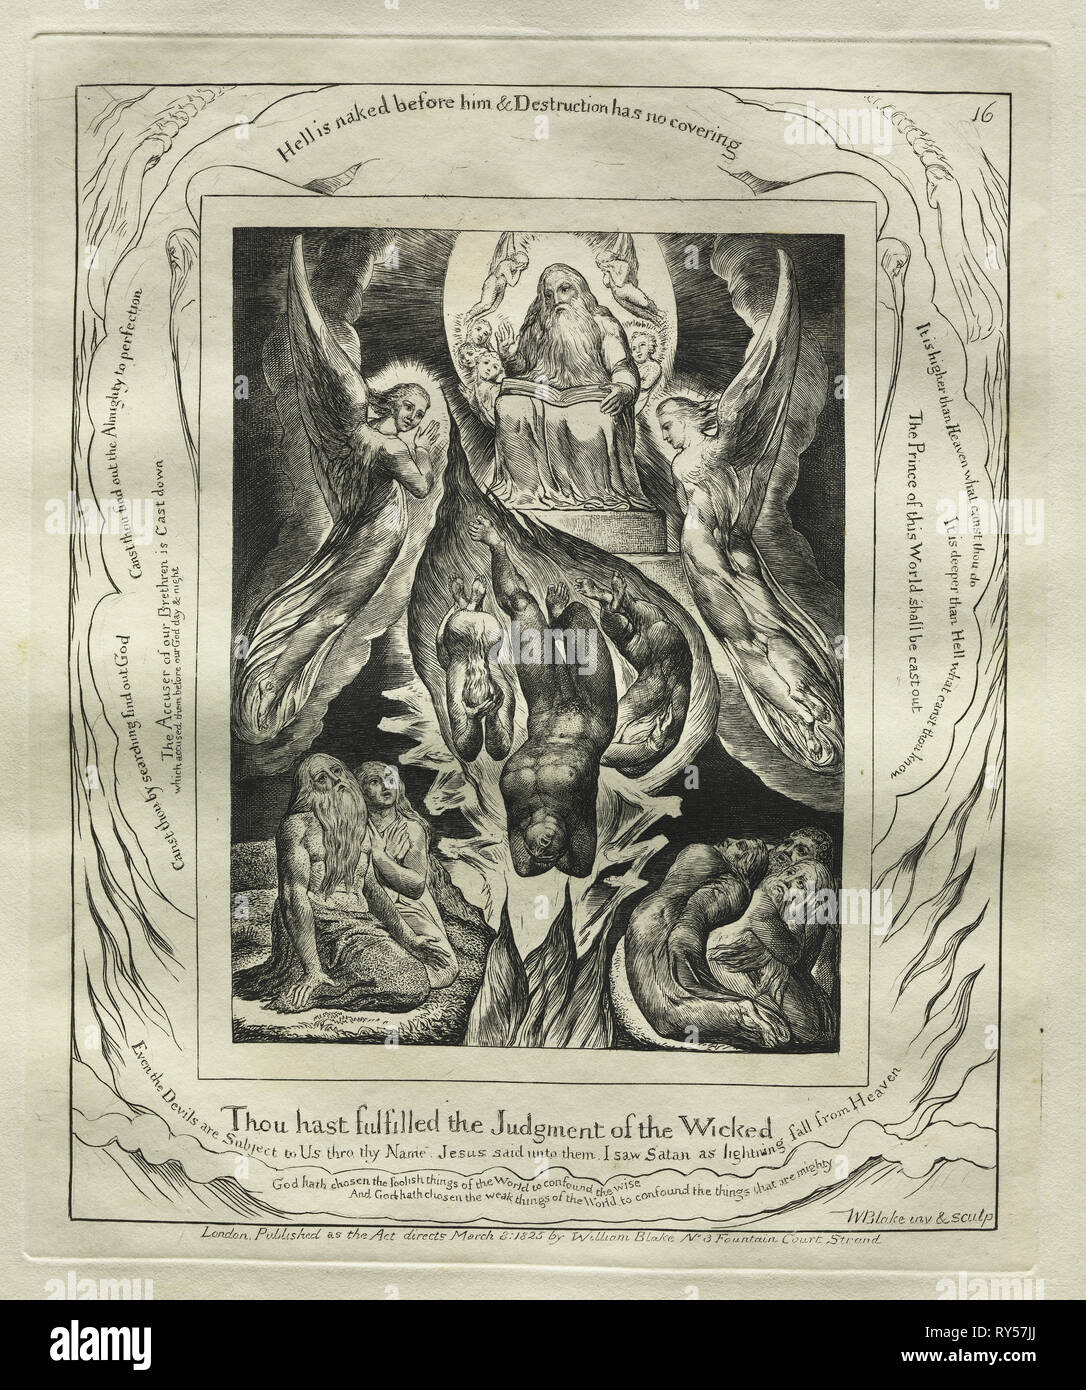 The Book of Job:  Pl. 16, Thou hast fulfilled the Judgment of the Wicked, 1825. William Blake (British, 1757-1827). Engraving - Stock Image